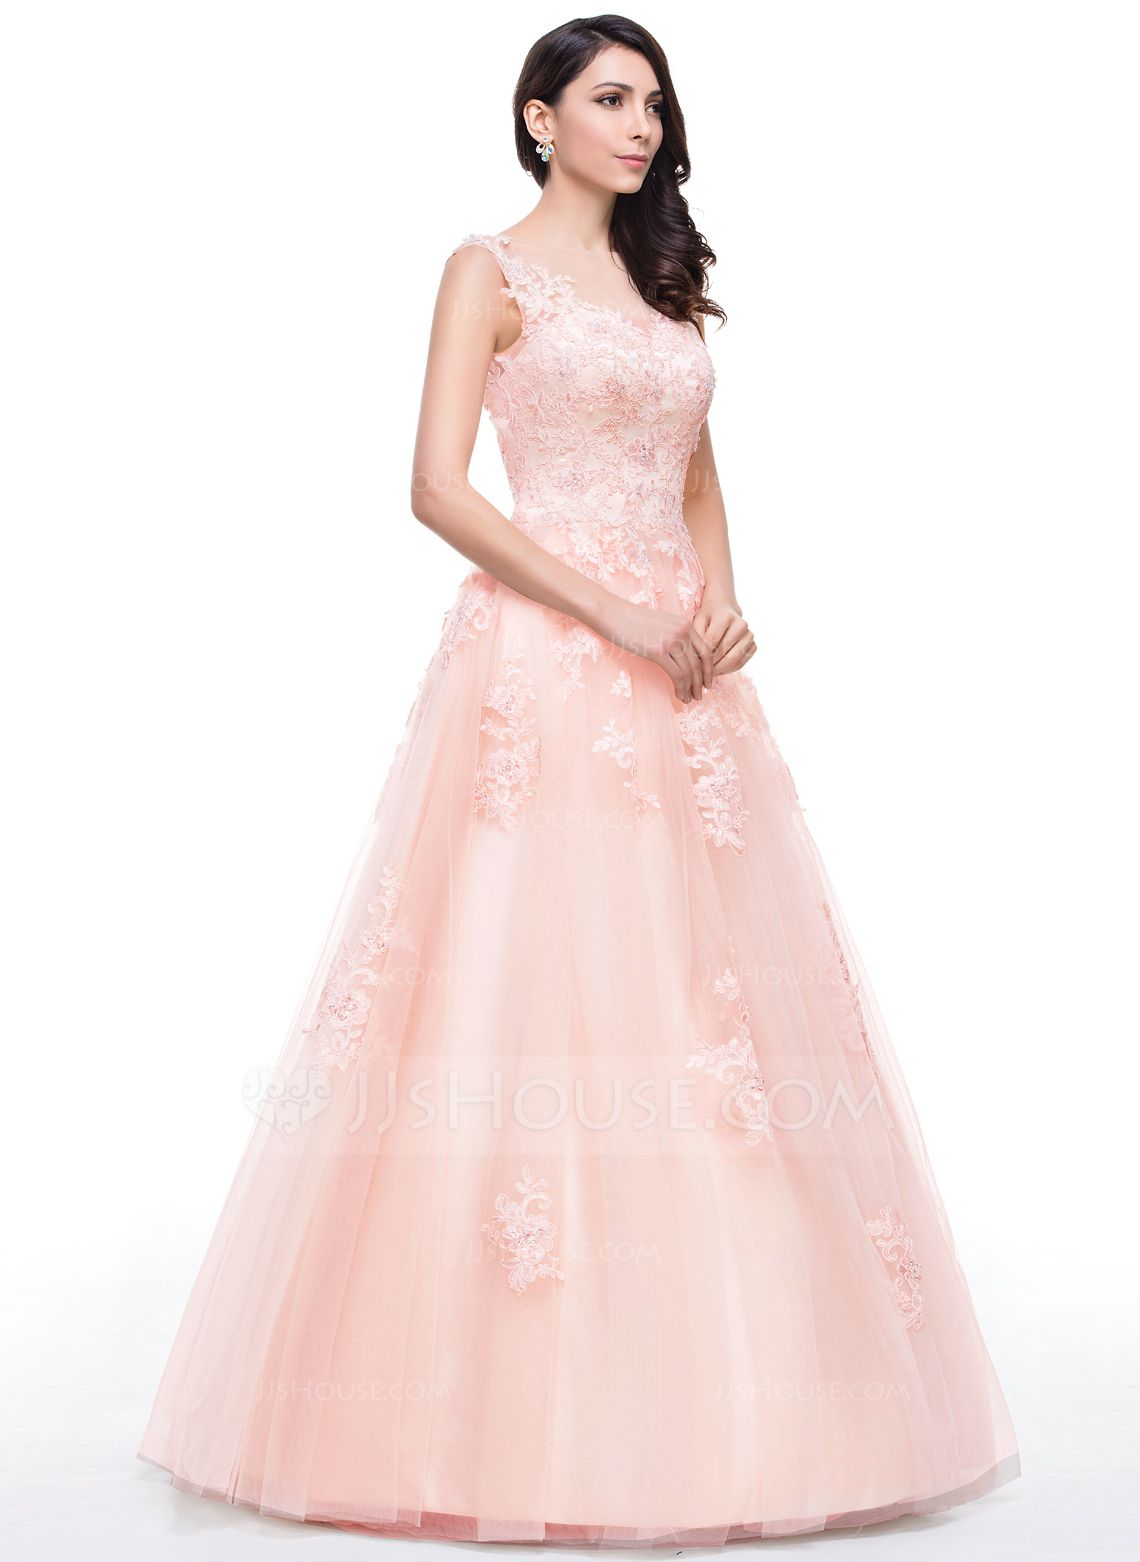 Ball-Gown Scoop Neck Floor-Length Tulle Prom Dress With Lace Beading ...